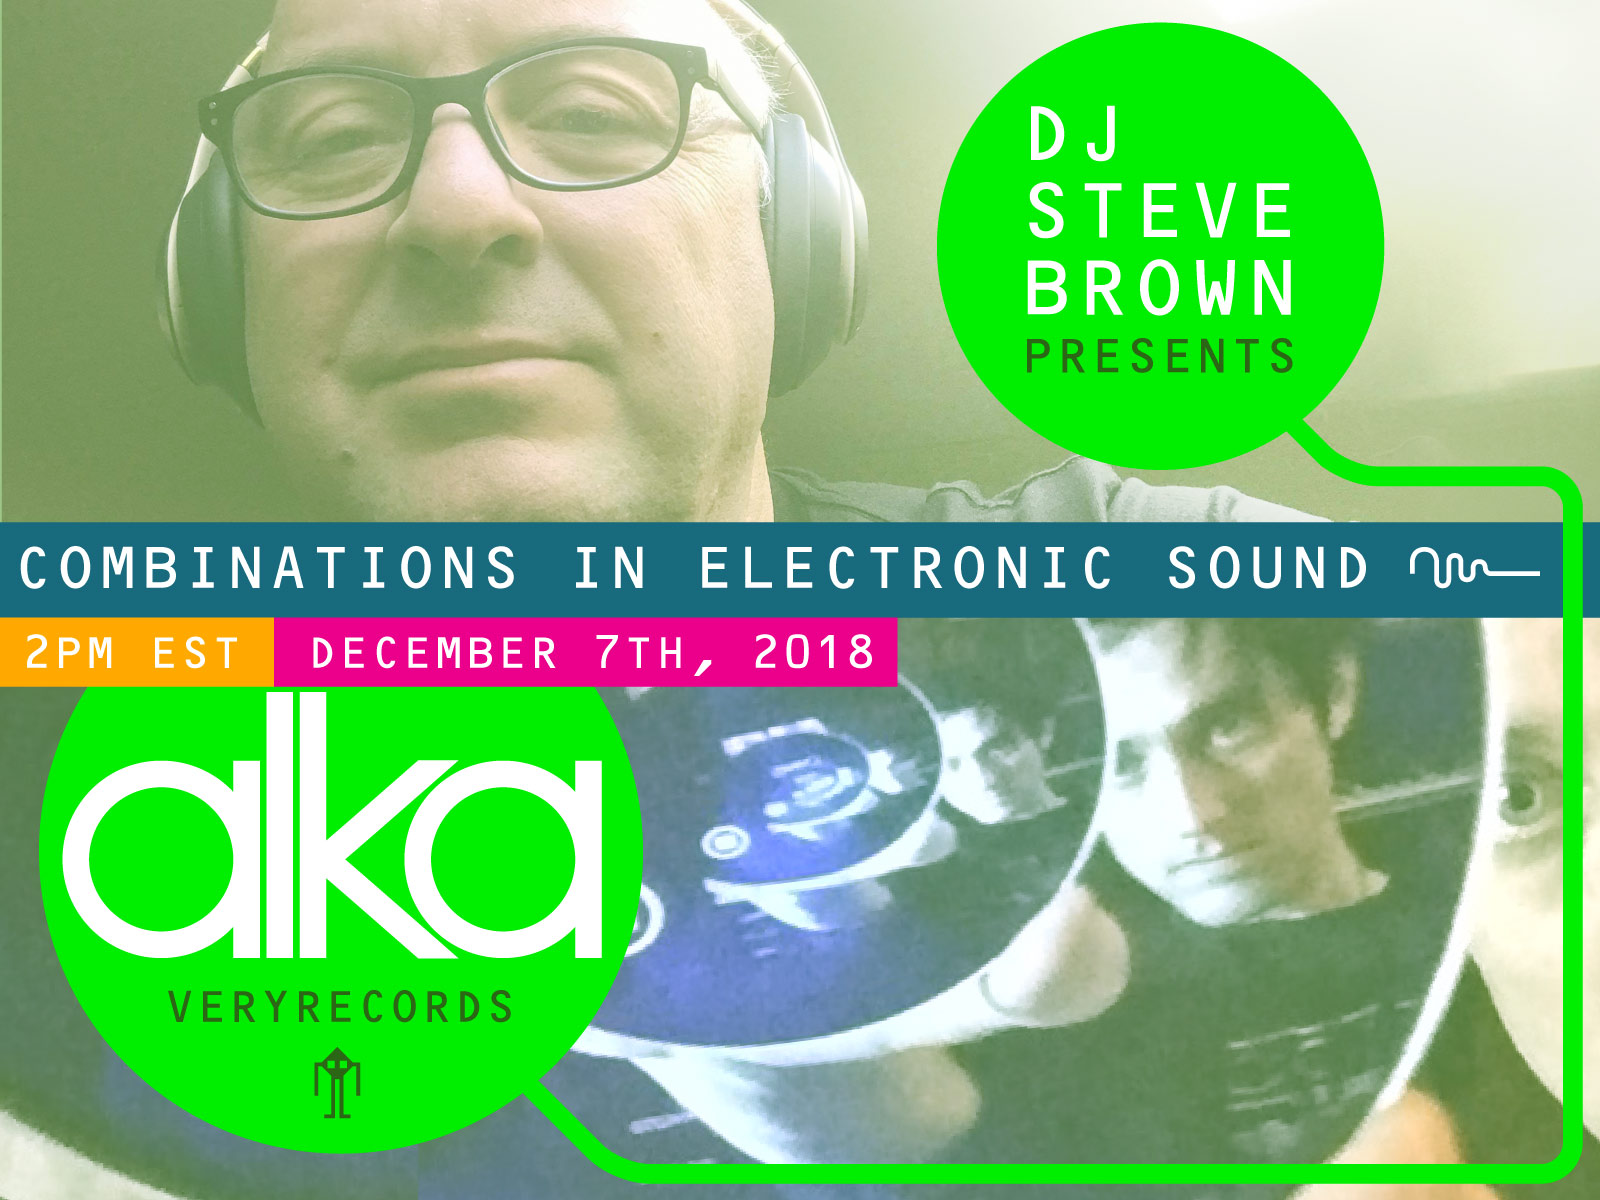 New At Work in Alka guest mix on DJ Steve Brown's 'Combinations In Electronic Sounds'